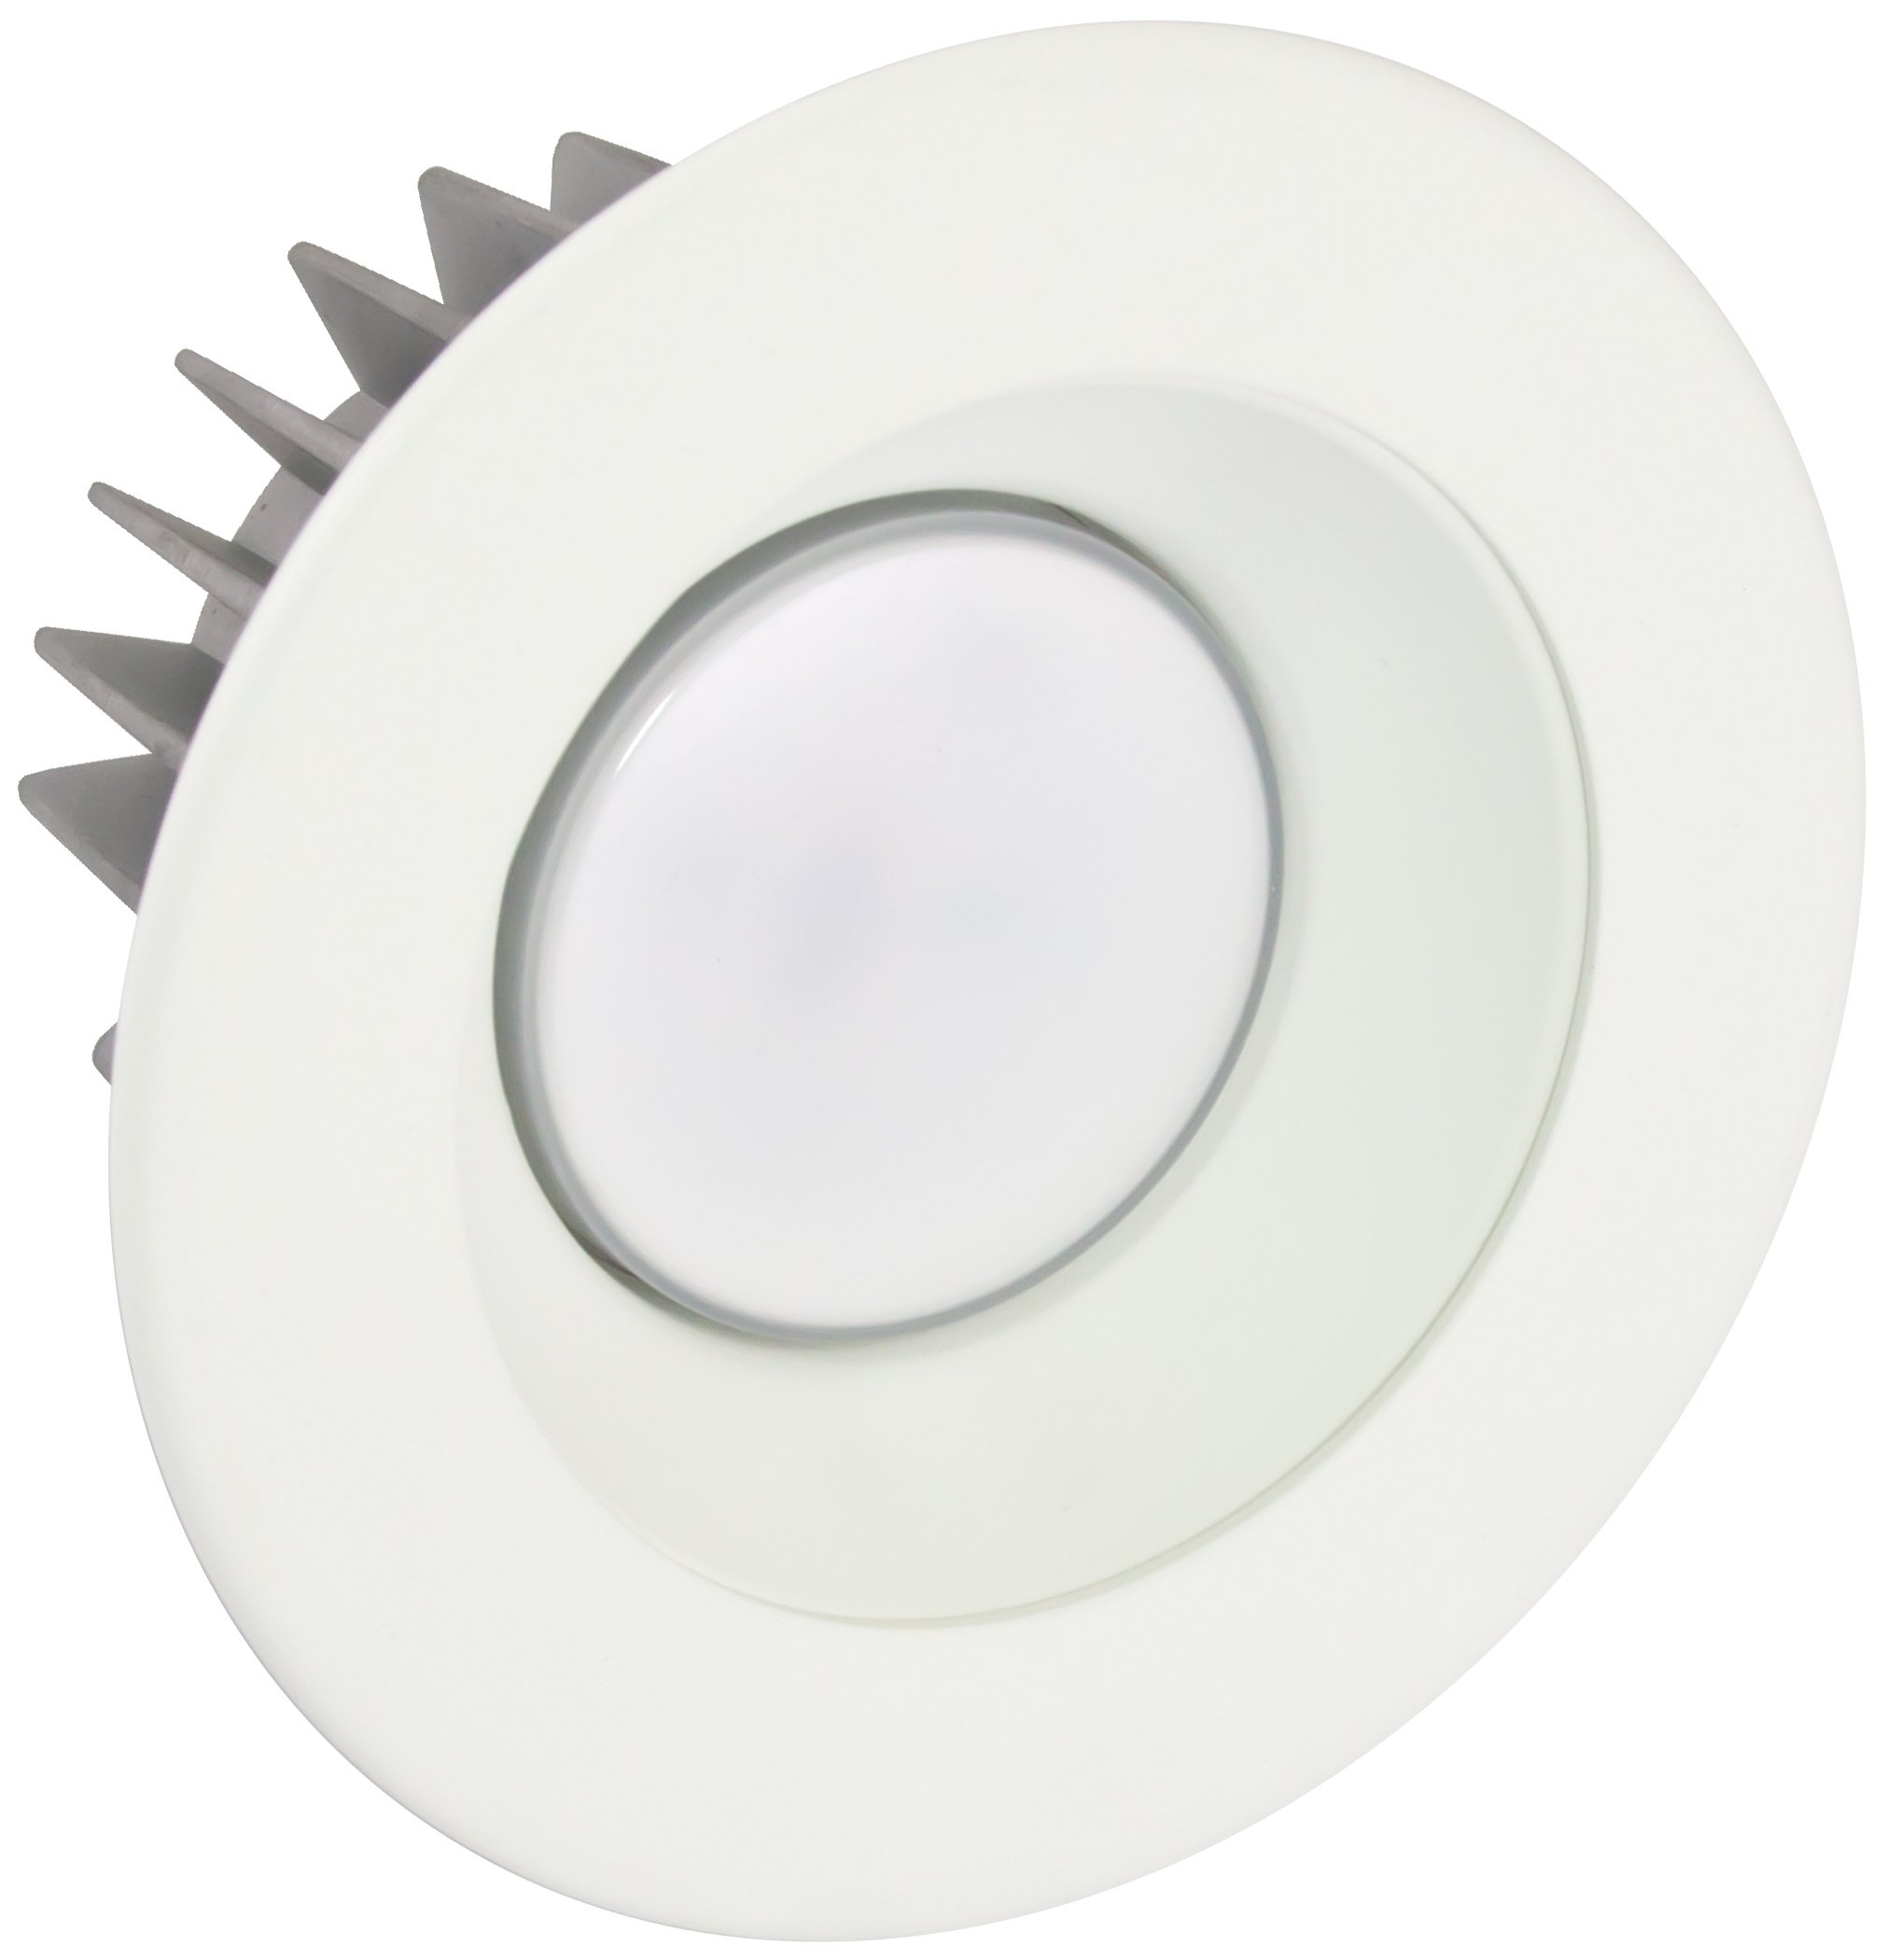 American Lighting X4-WHM-WH-X45 4-Inch Downlight X45 Series Trim Kit with White Multiplier, White